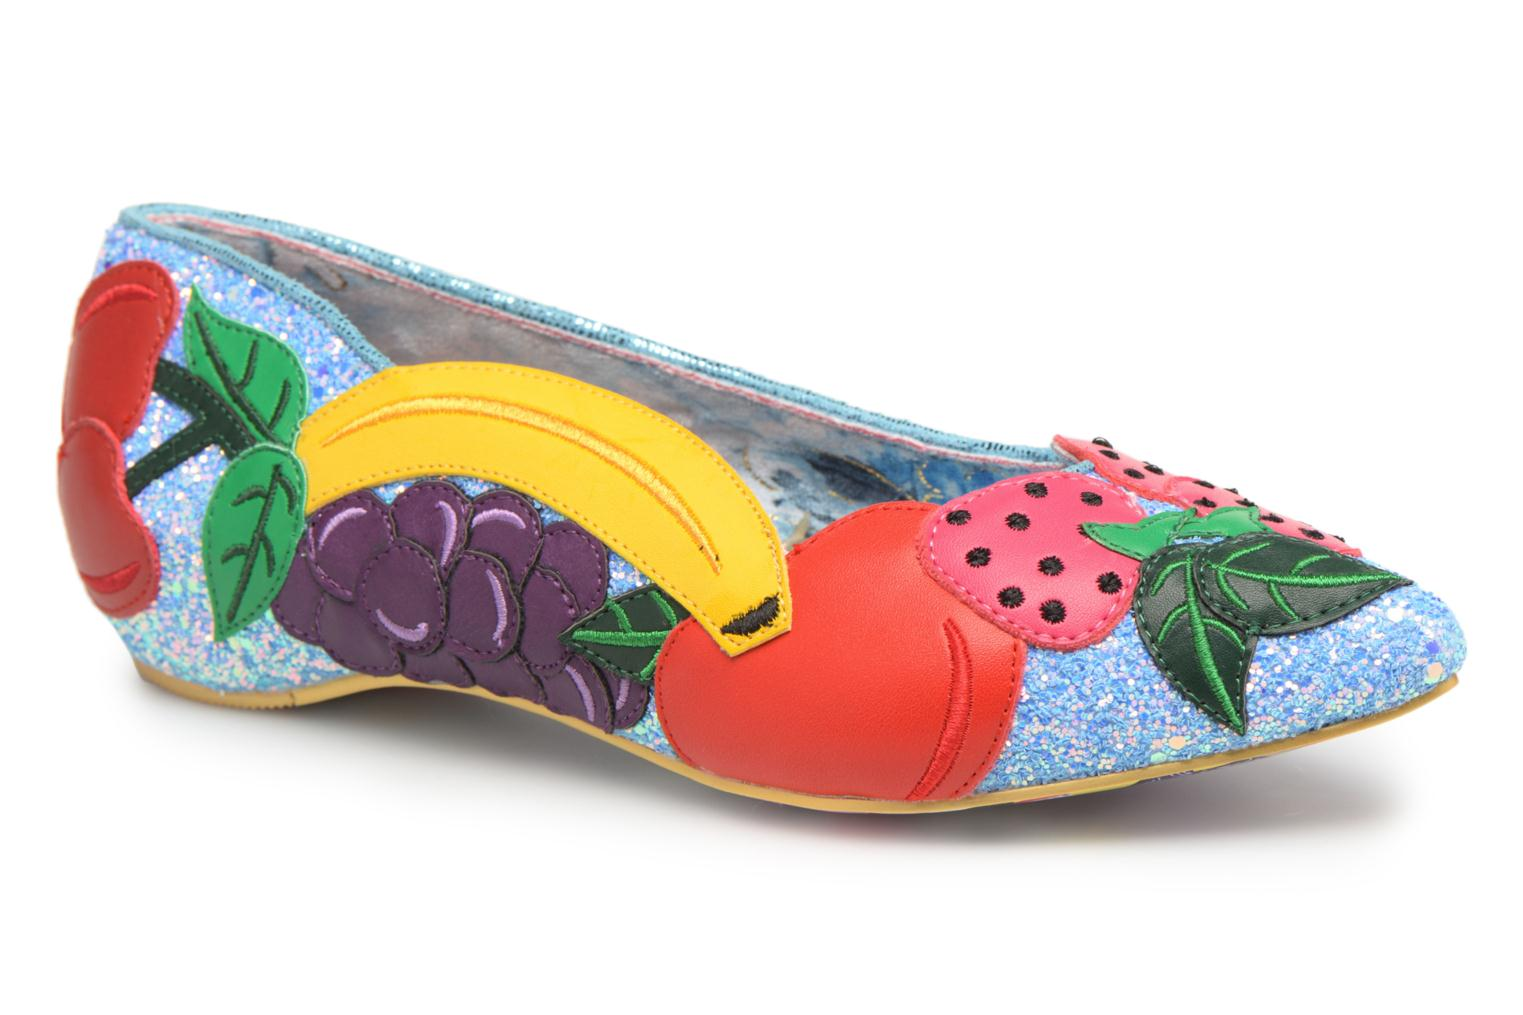 BANANA BOAT by Irregular Choice